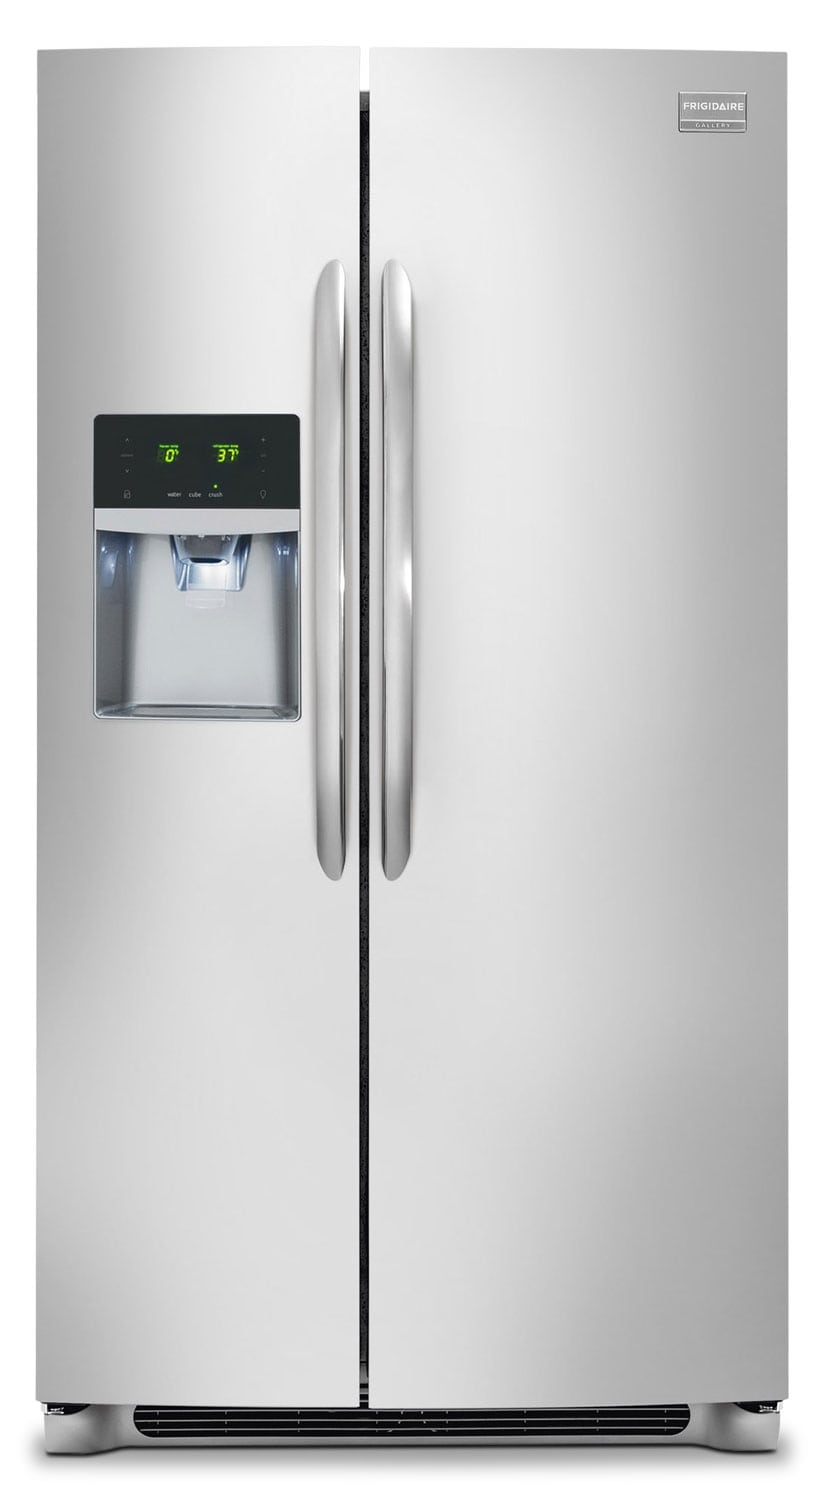 Frigidaire Gallery Stainless Steel Counter-Depth Side-by-Side Refrigerator (23 Cu. Ft.) - FGHC2355PF